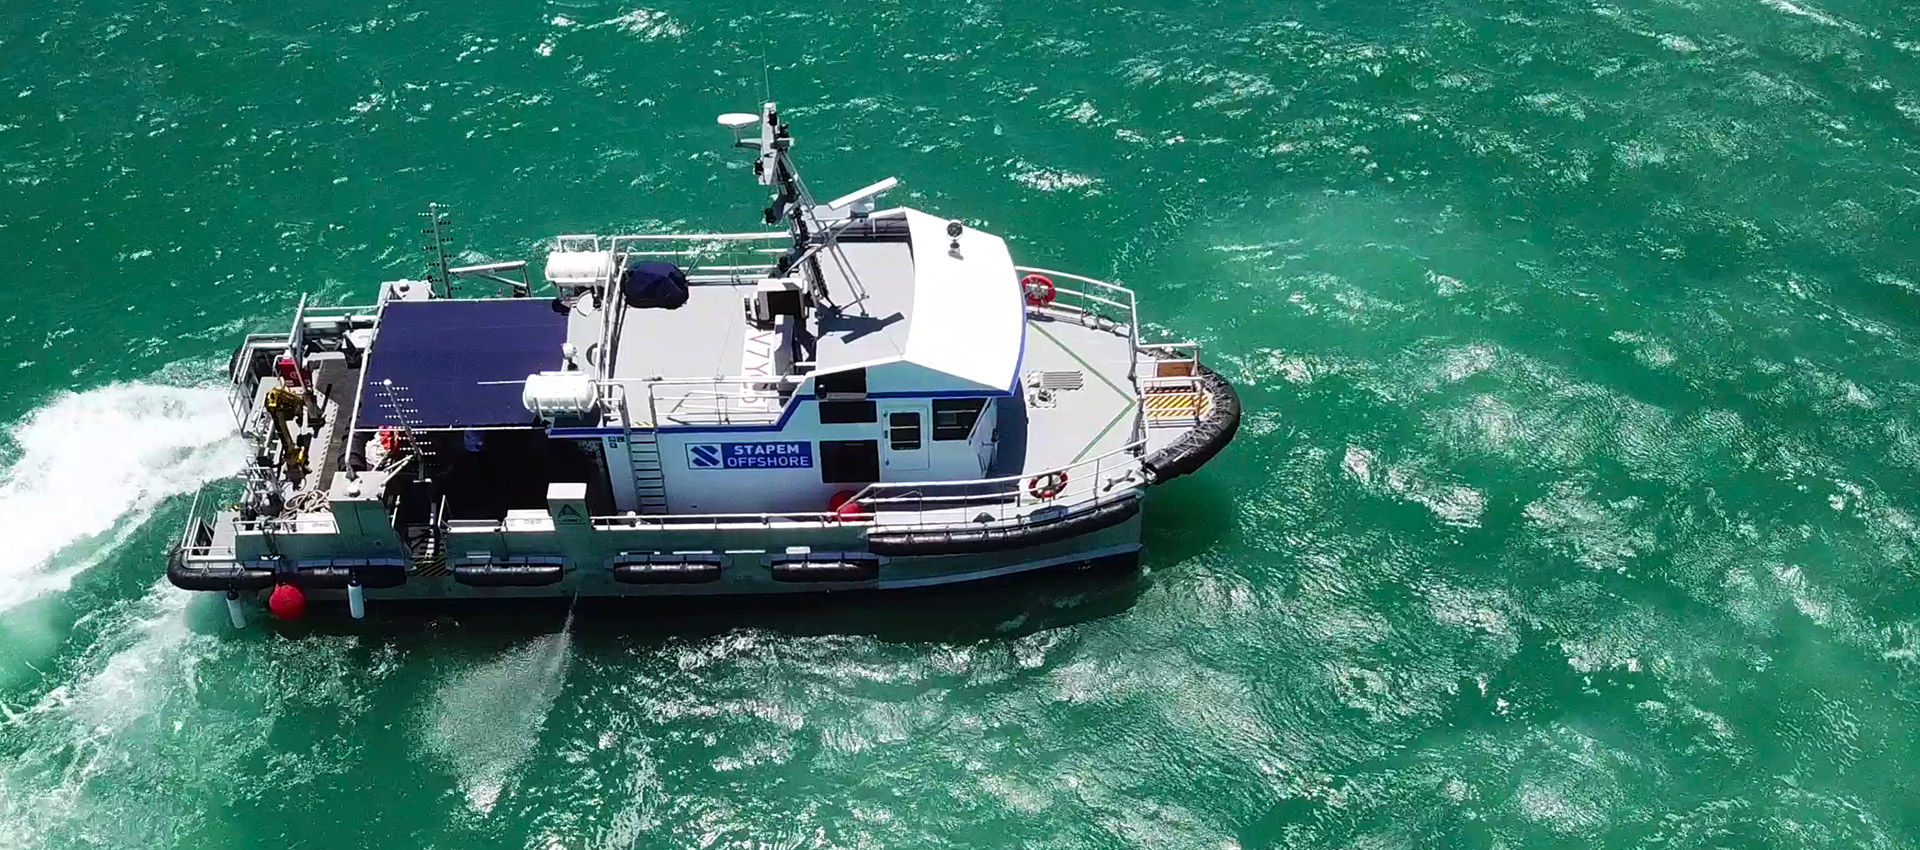 Stapem Beluga 19m Dive Support Workboat